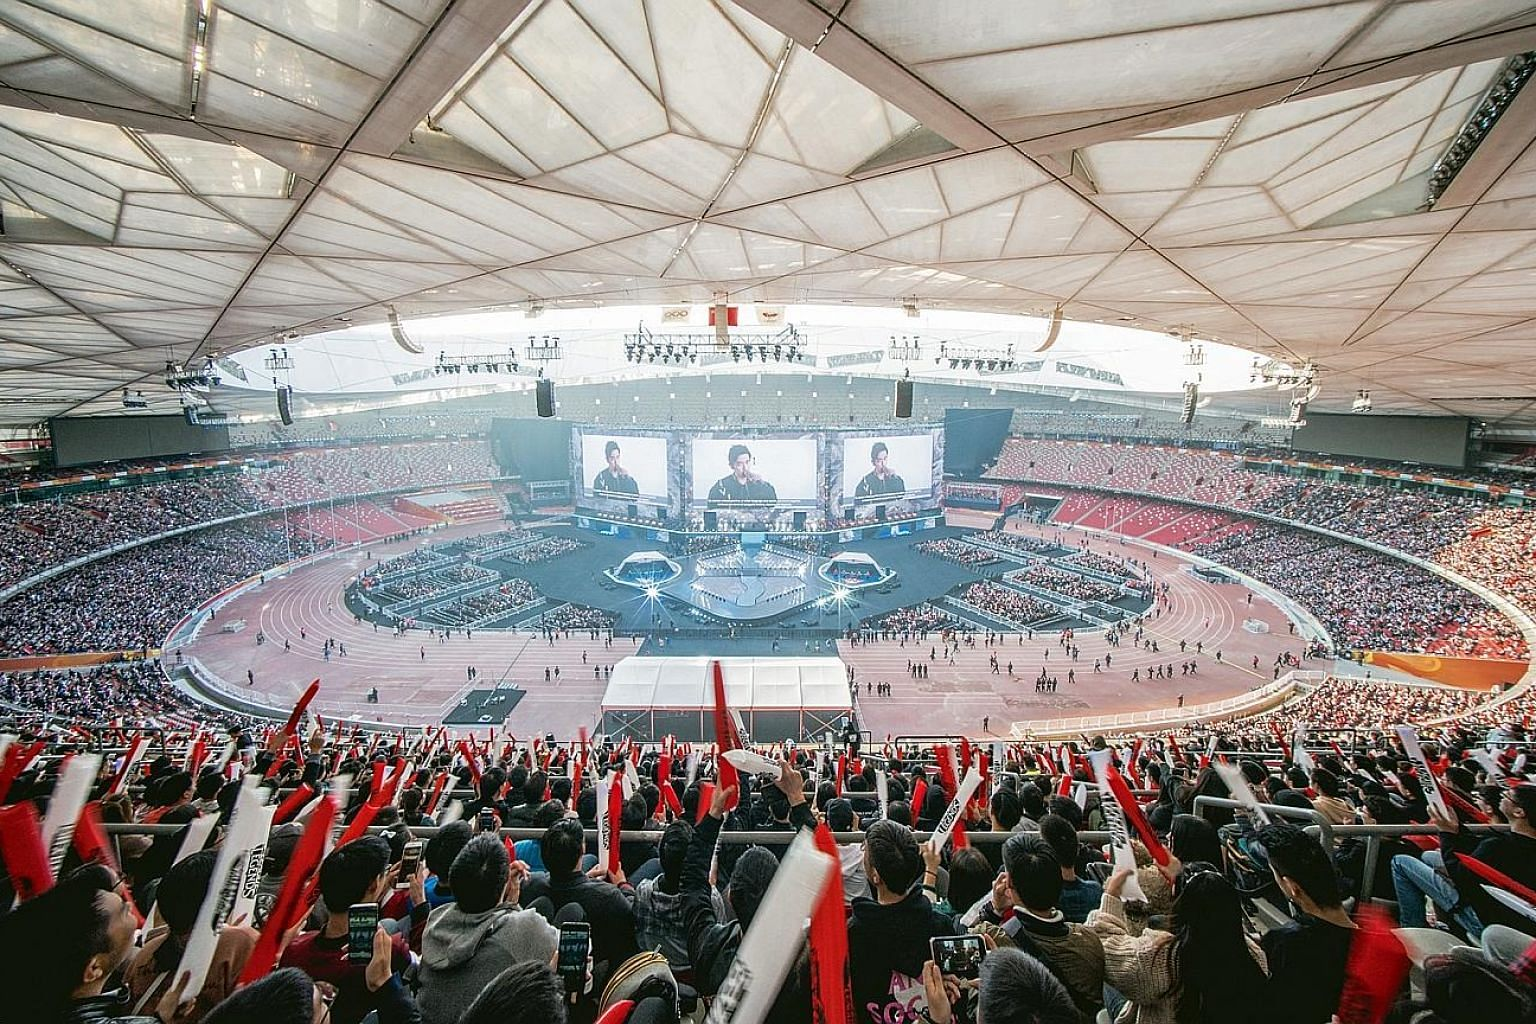 Over 40,000 fans attended the League of Legends World Championship, which was held at Beijing's Bird's Nest stadium last Saturday.